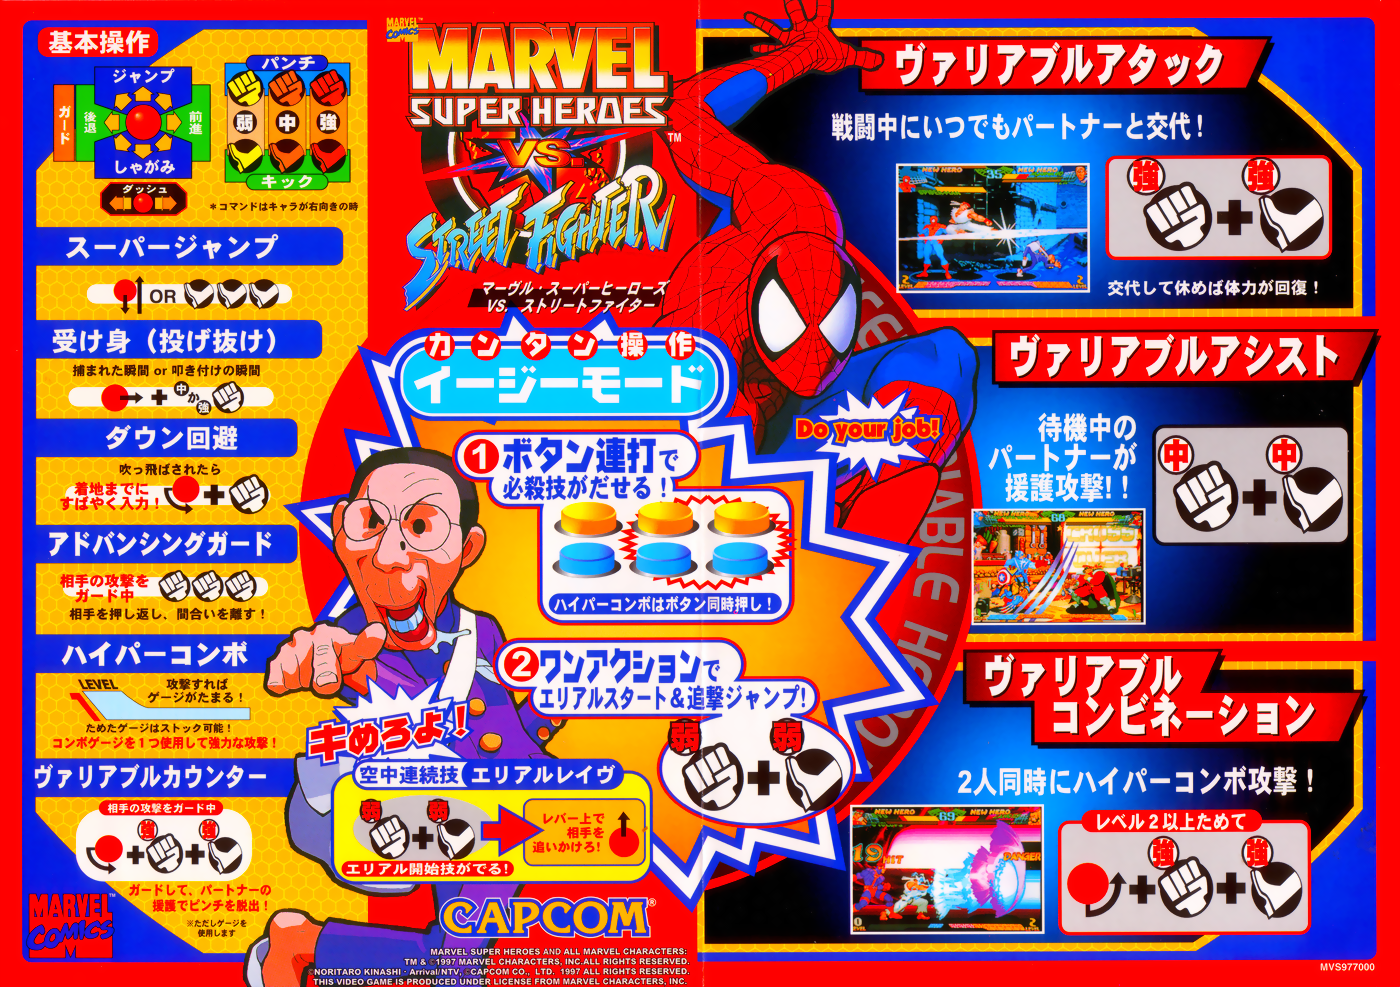 Marvel Super Heroes Vs. Street Fighter (Hispanic 970625) flyer